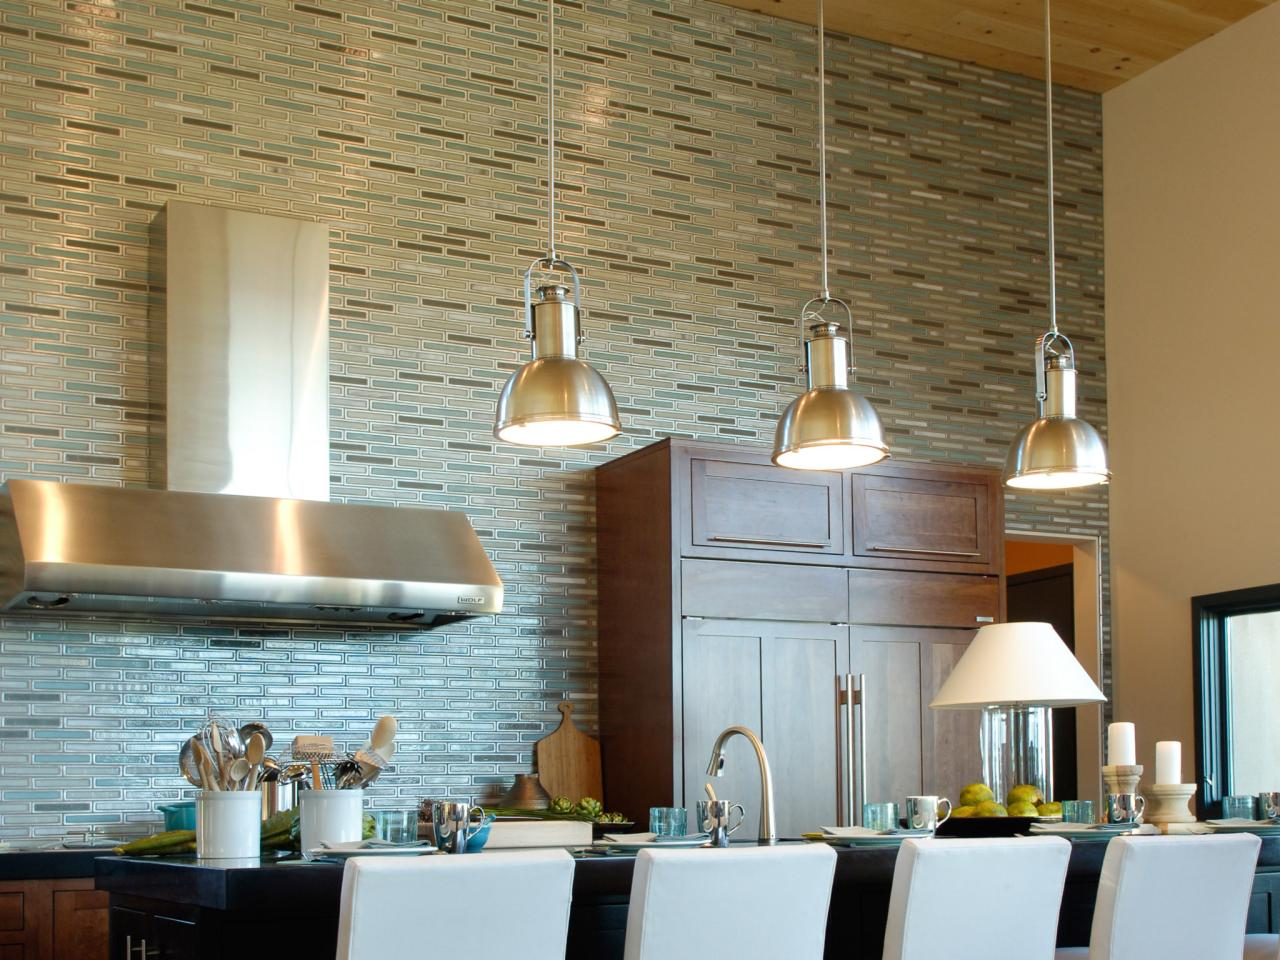 Kitchen Wall Tile Design Ideas kitchen wall tile designs pictures kitchen tile design Tile Backsplash Ideas